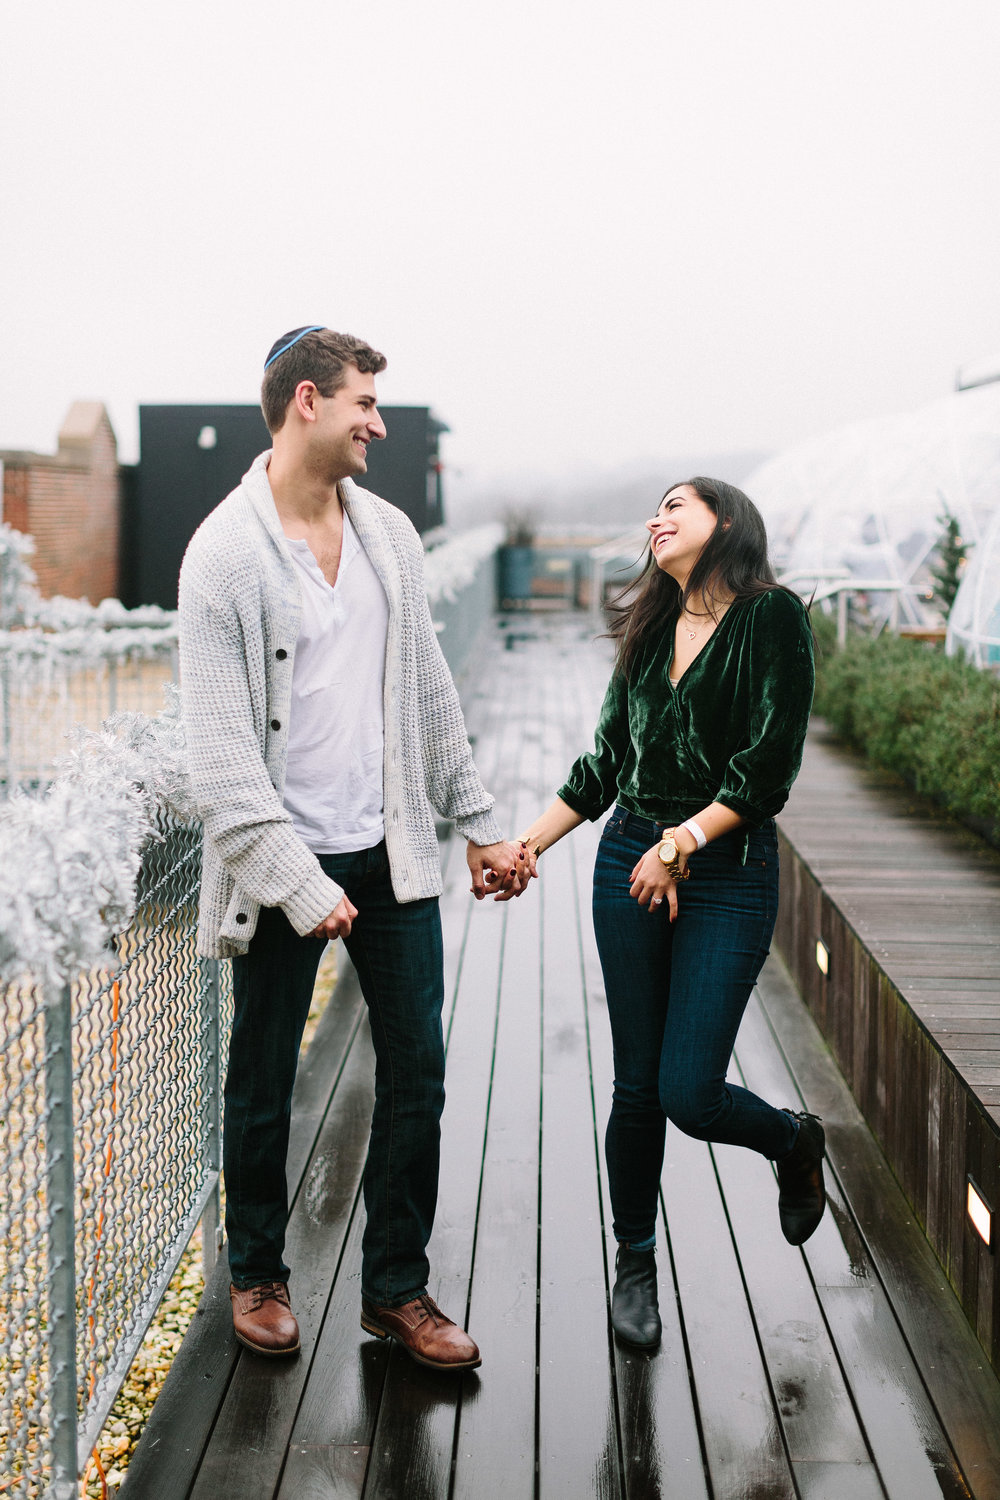 atlanta_proposal_photographer_ice_skating_rooftop_ponce_city_surprise_jewish_couple_1199.jpg